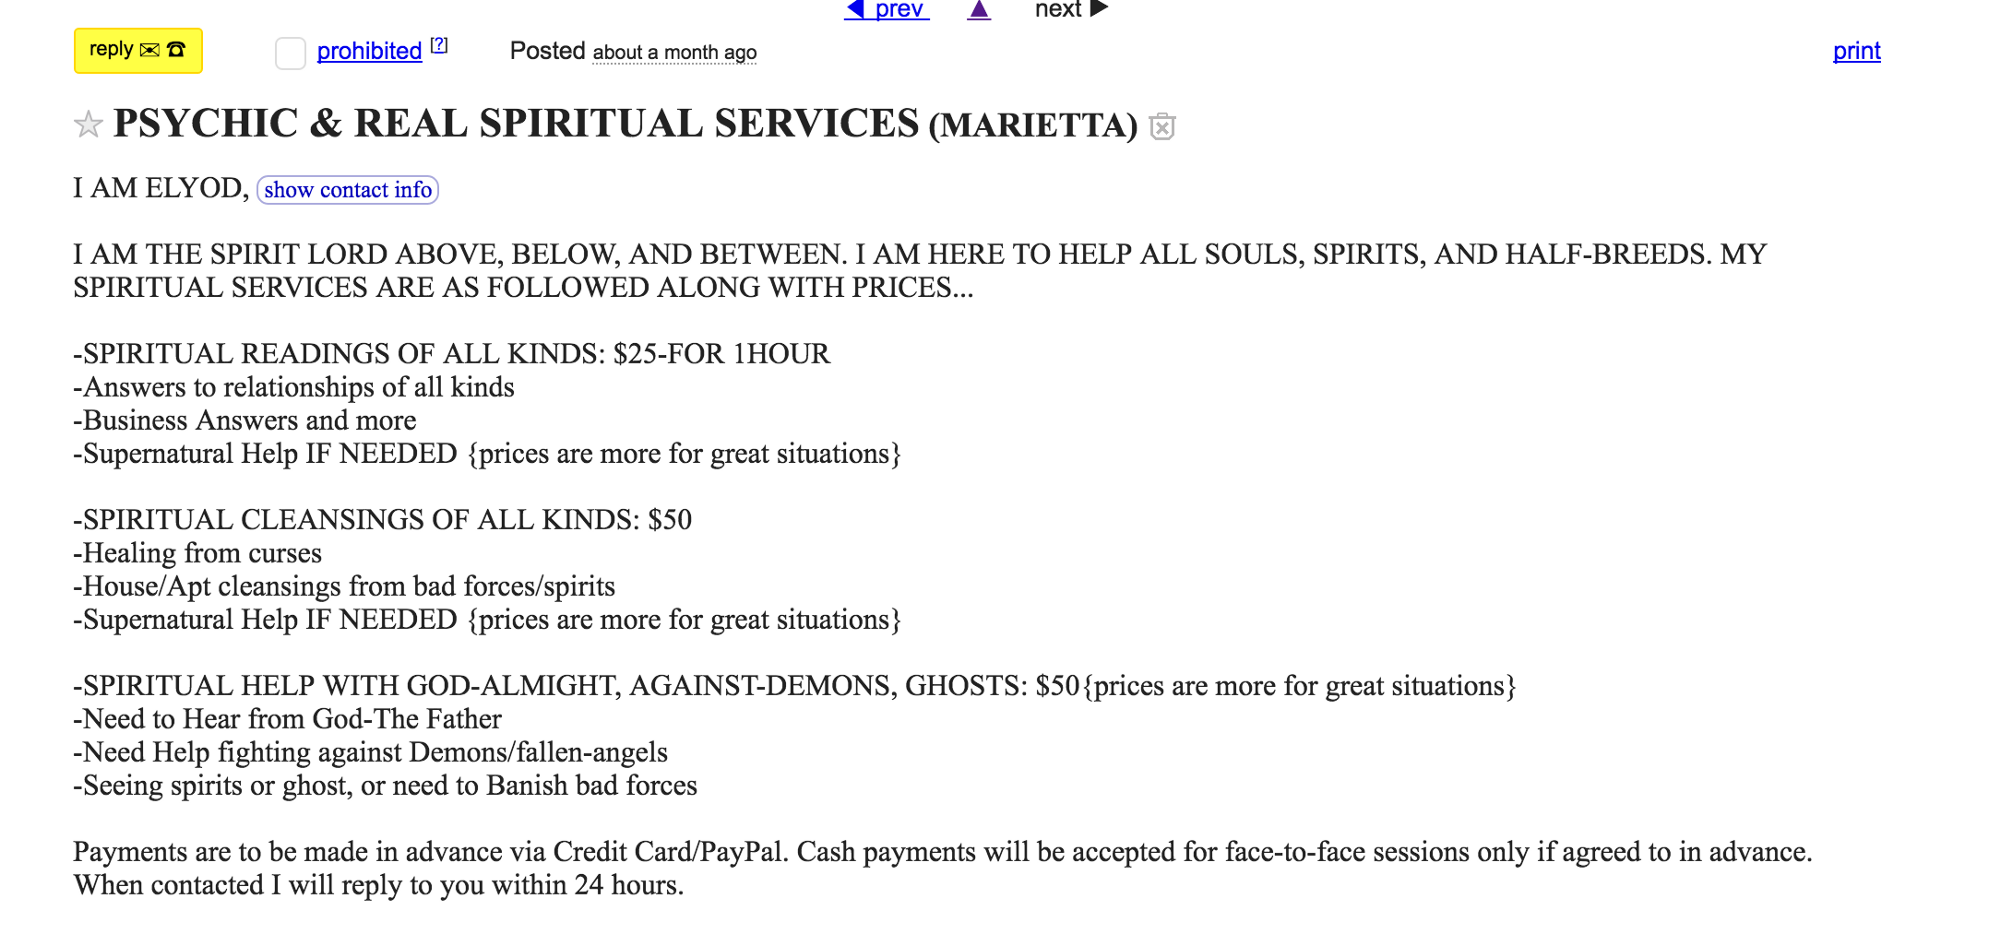 Craigslist Conjurations — An exploration into the interstices of